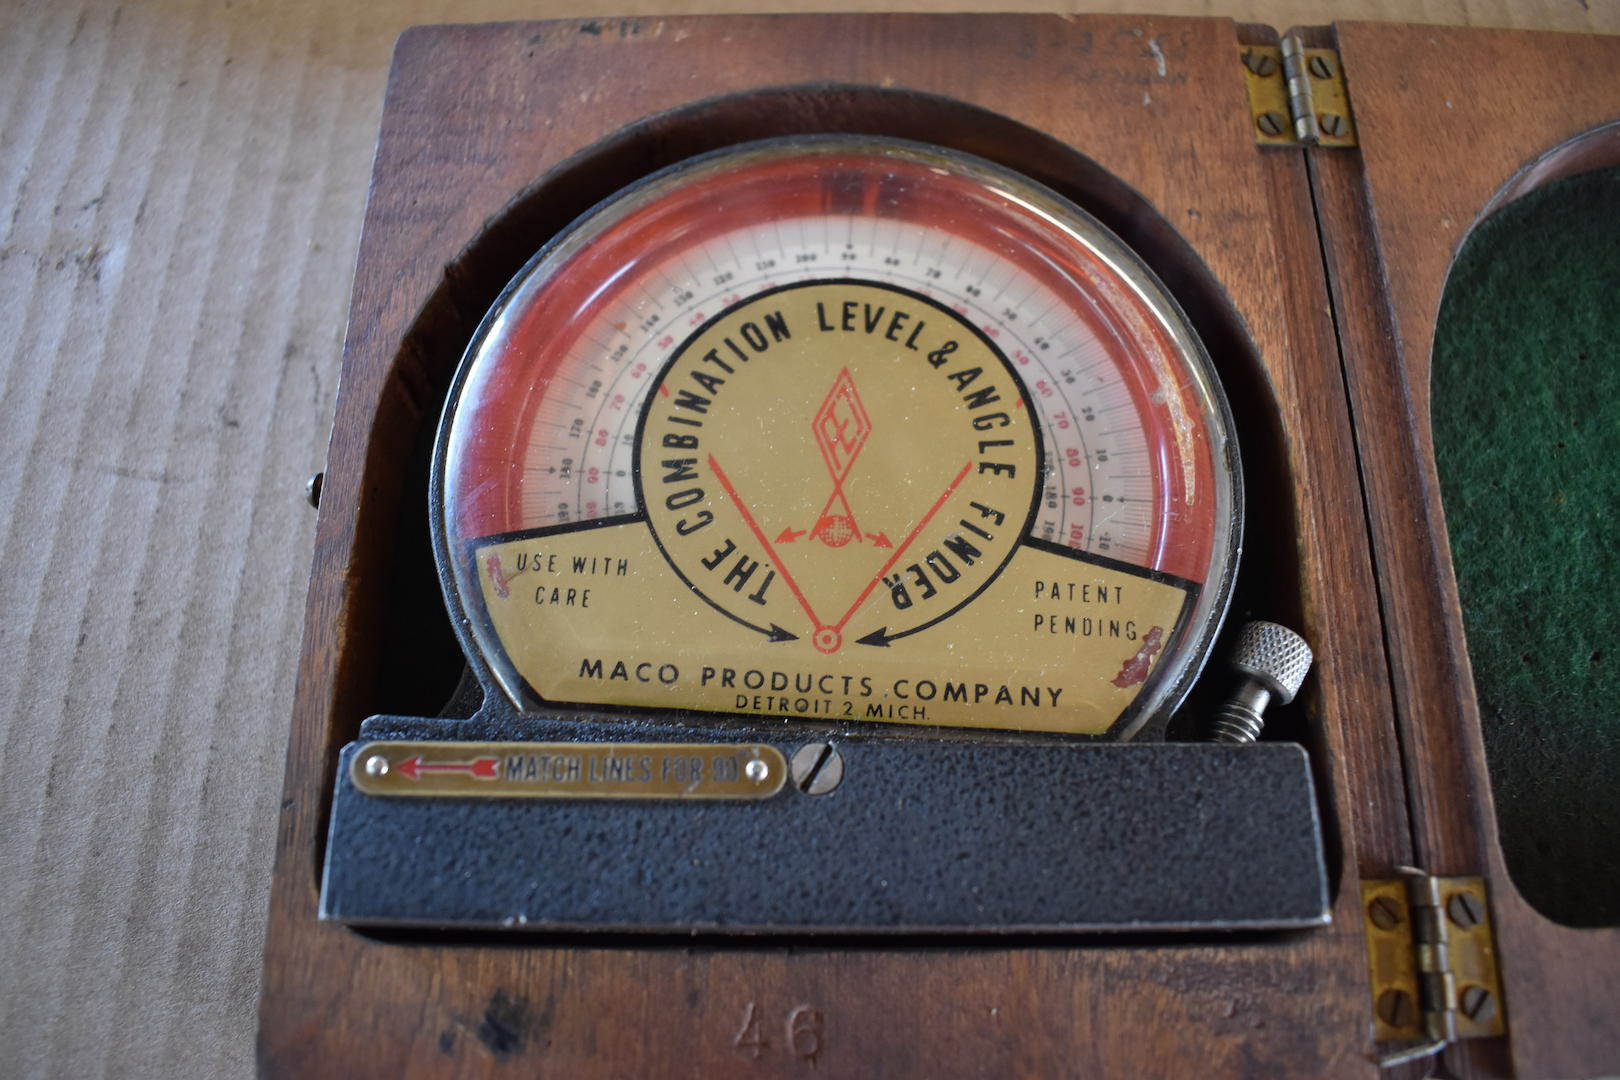 Lot 49 - Maco Combination Level & Angle Finder